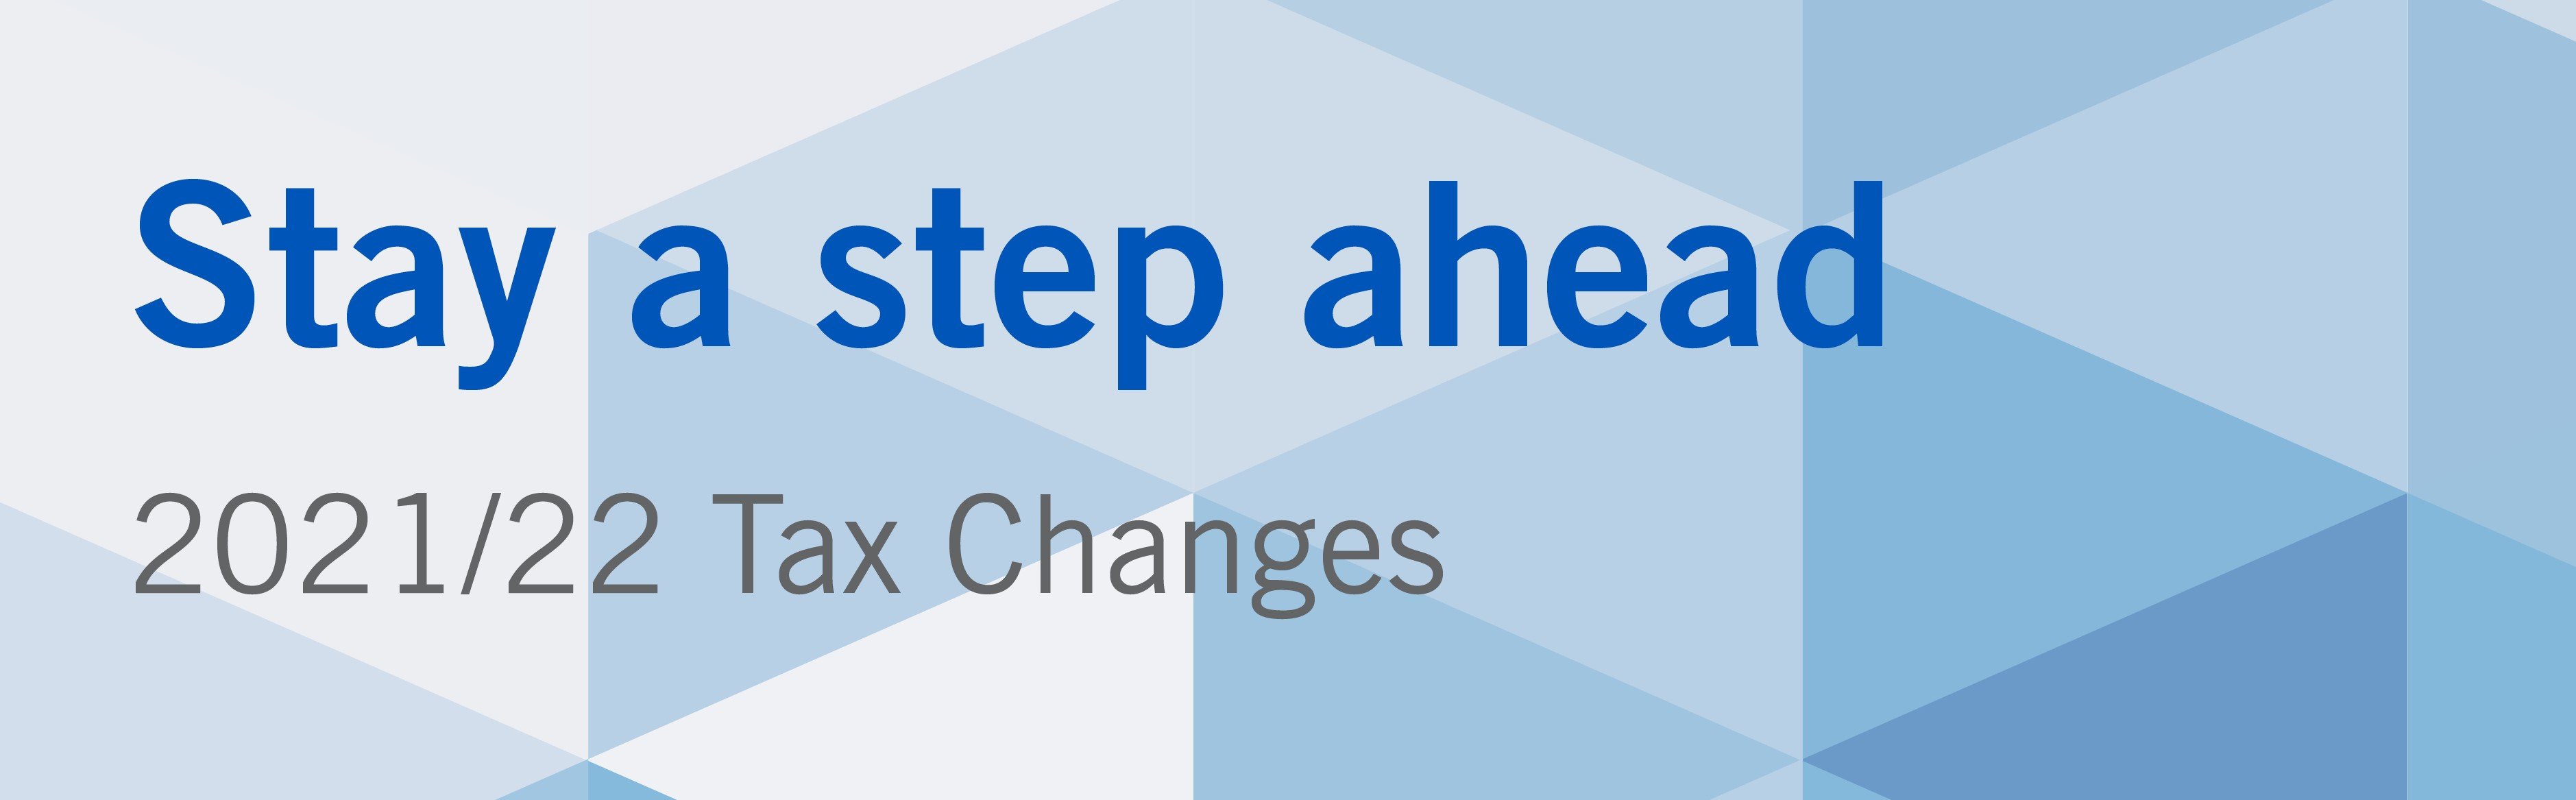 Stay ahead of possible tax changes